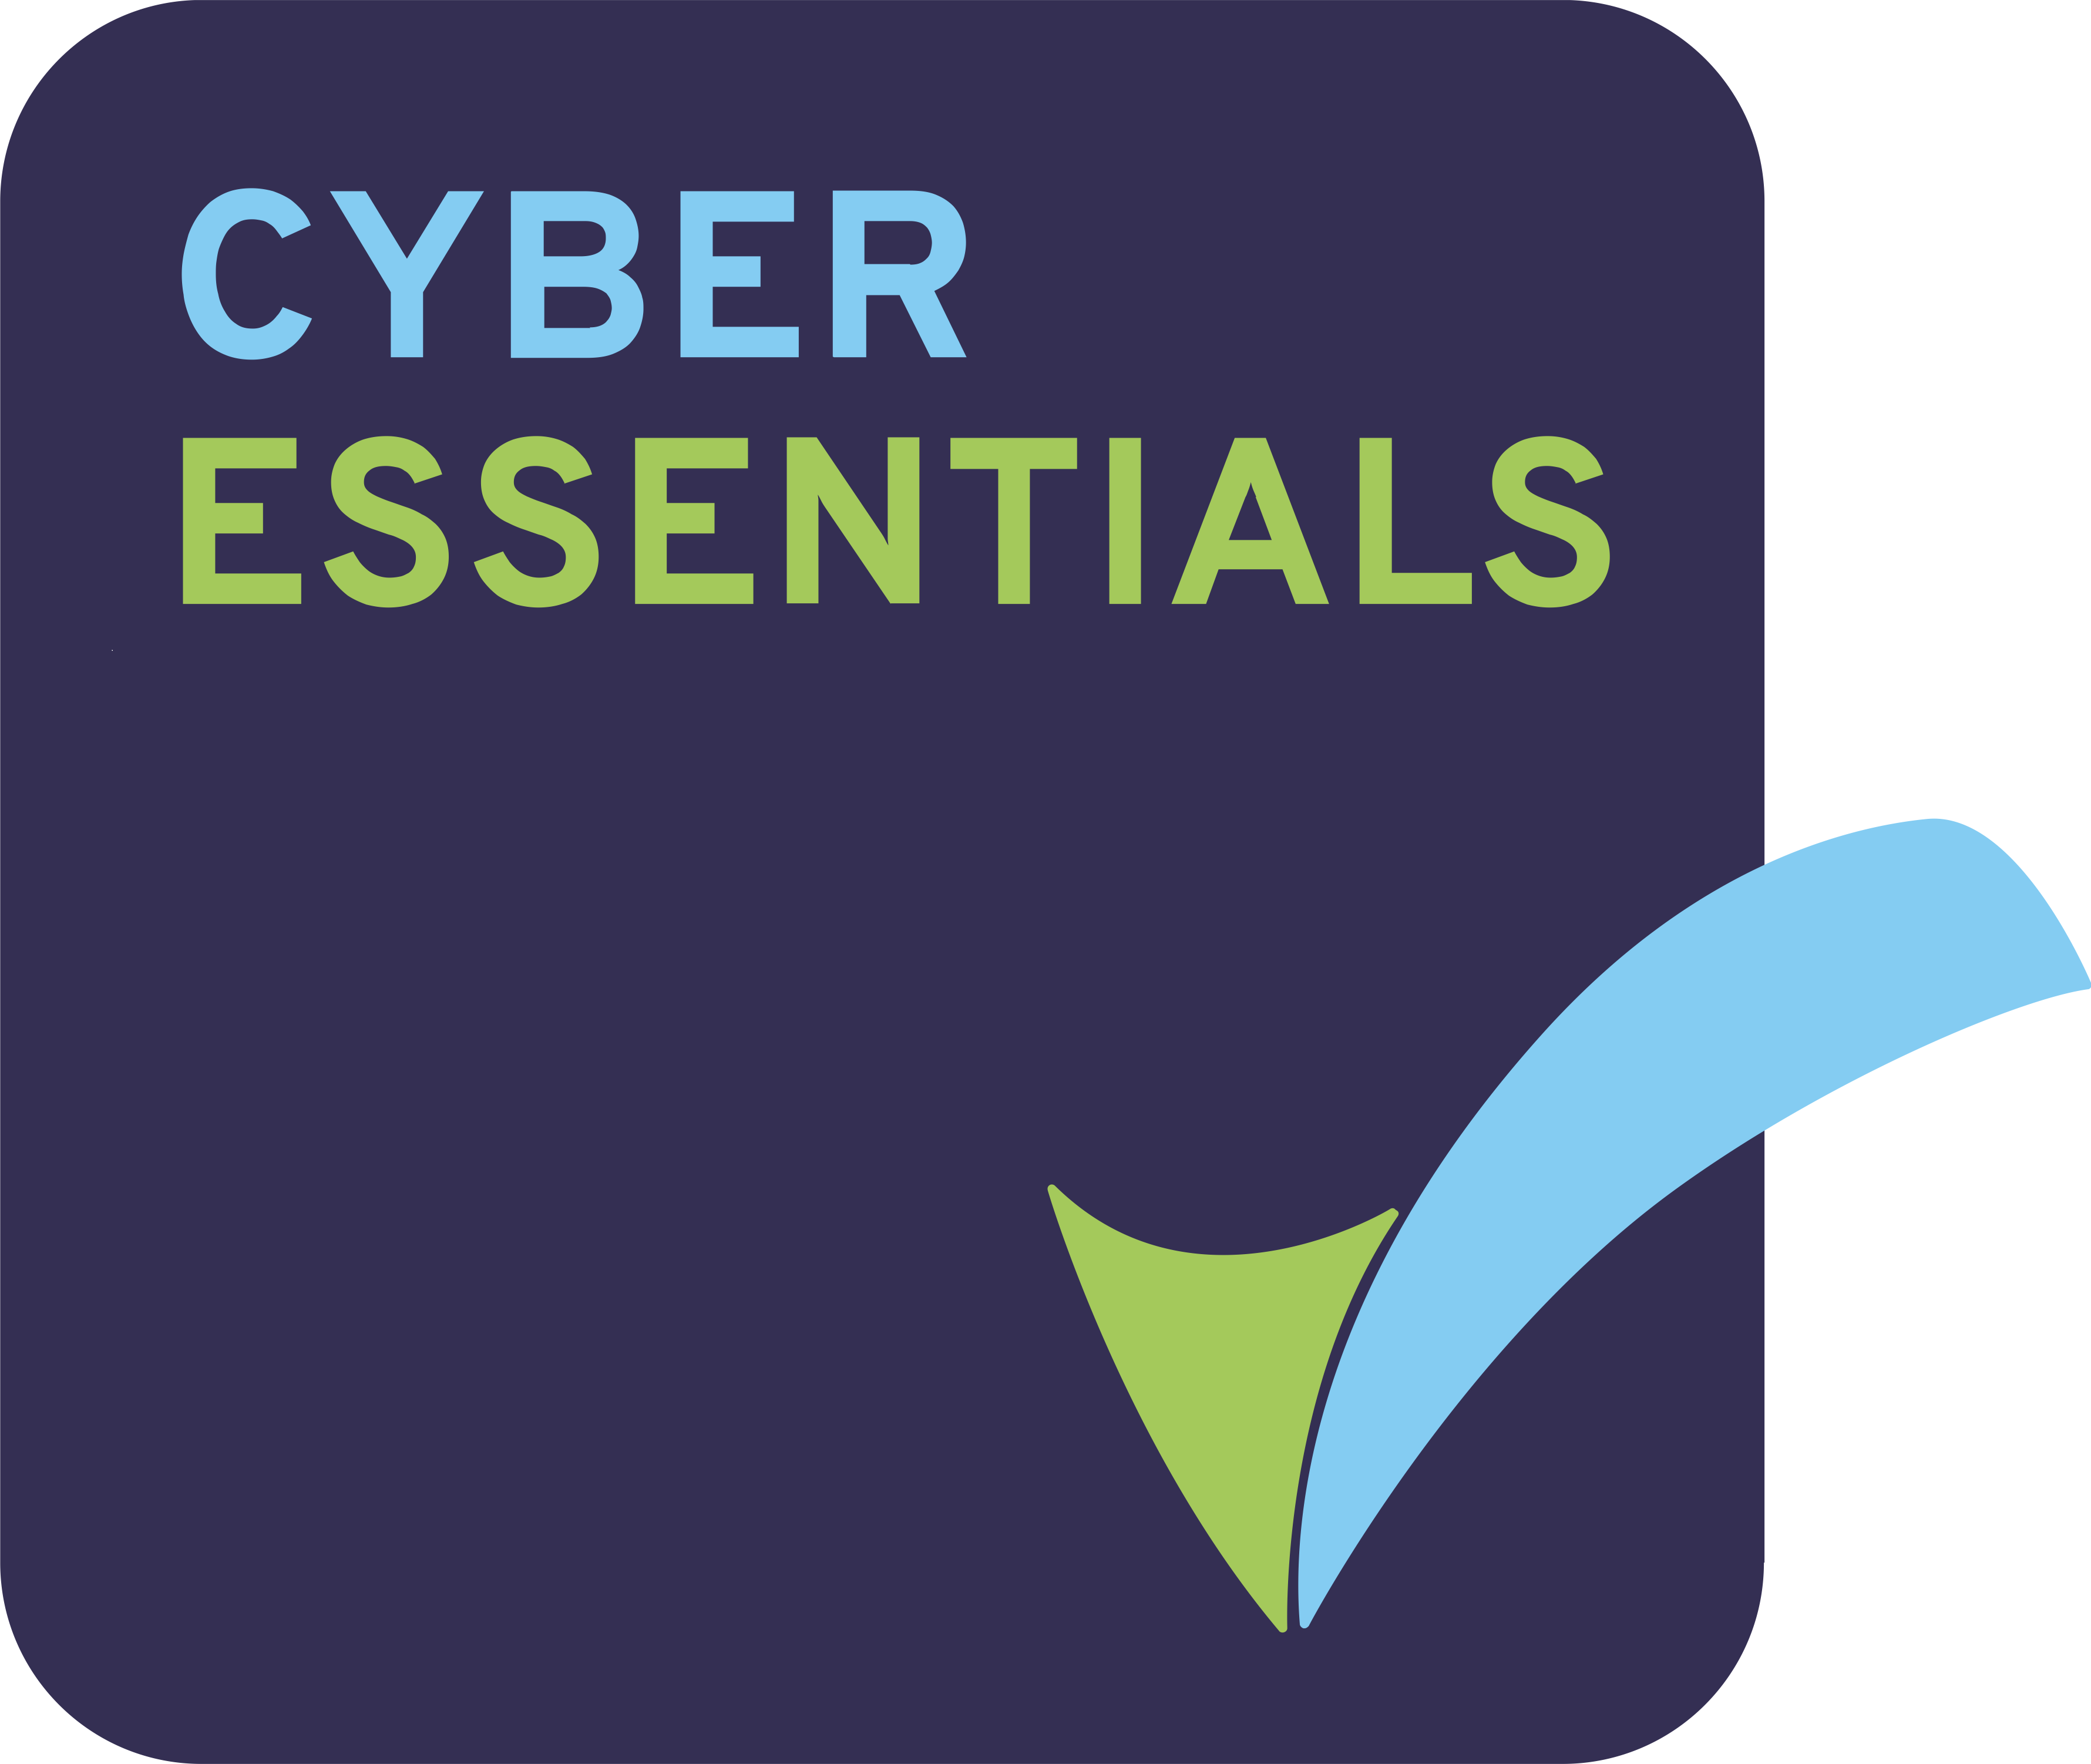 Award of Cyber Essentials Certification